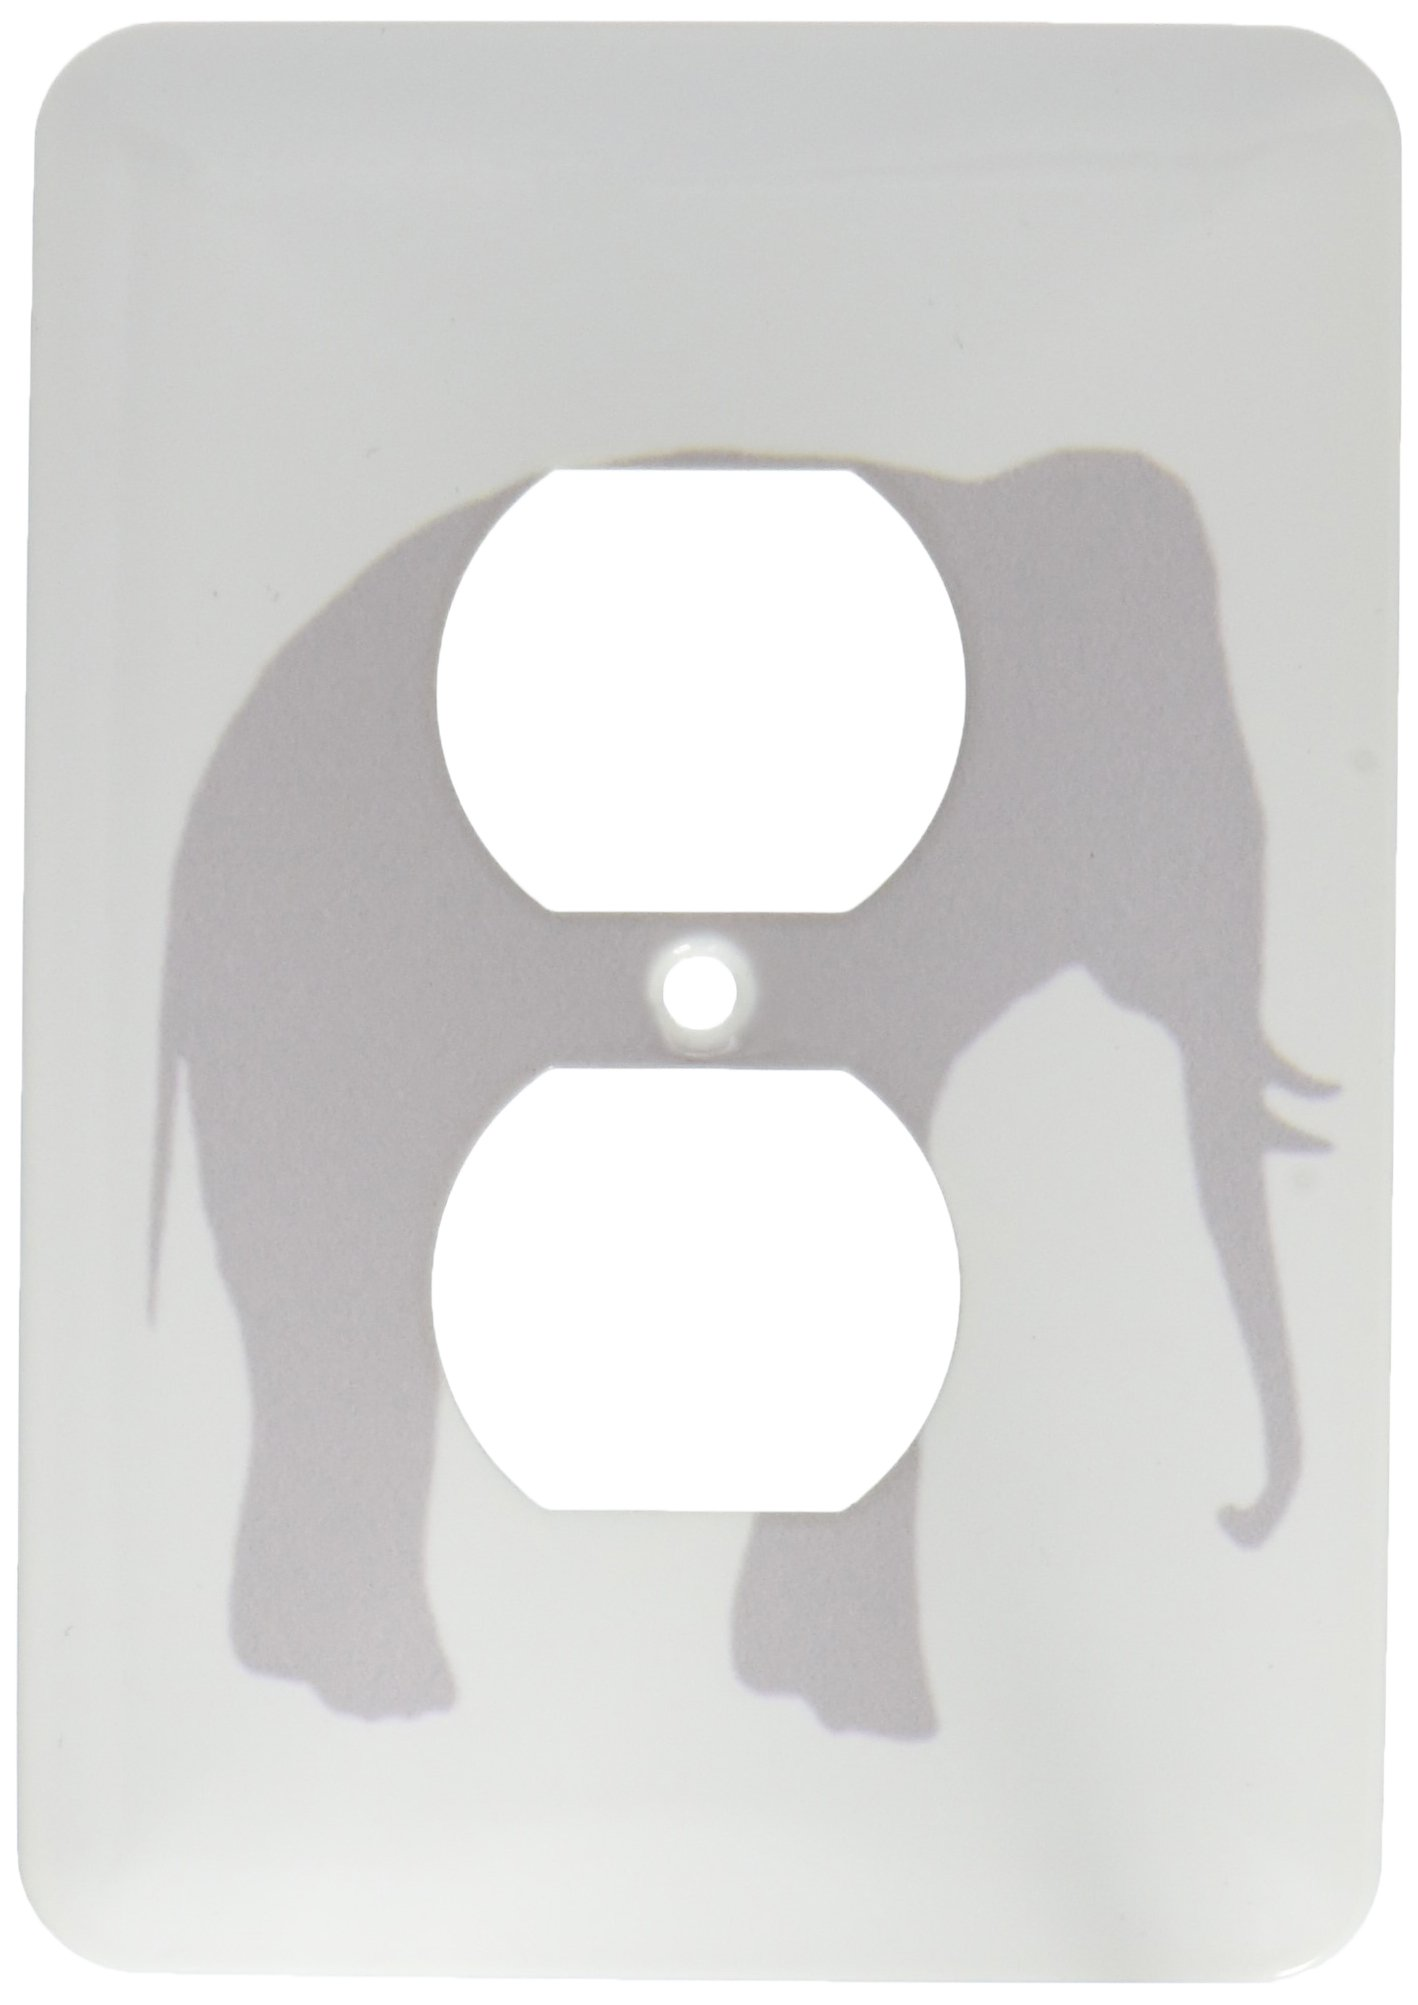 3dRose lsp_164908_6  Grey Elephant Silhouette. Gray Animal on White Modern Minimalist Style 2 Plug Outlet Cover